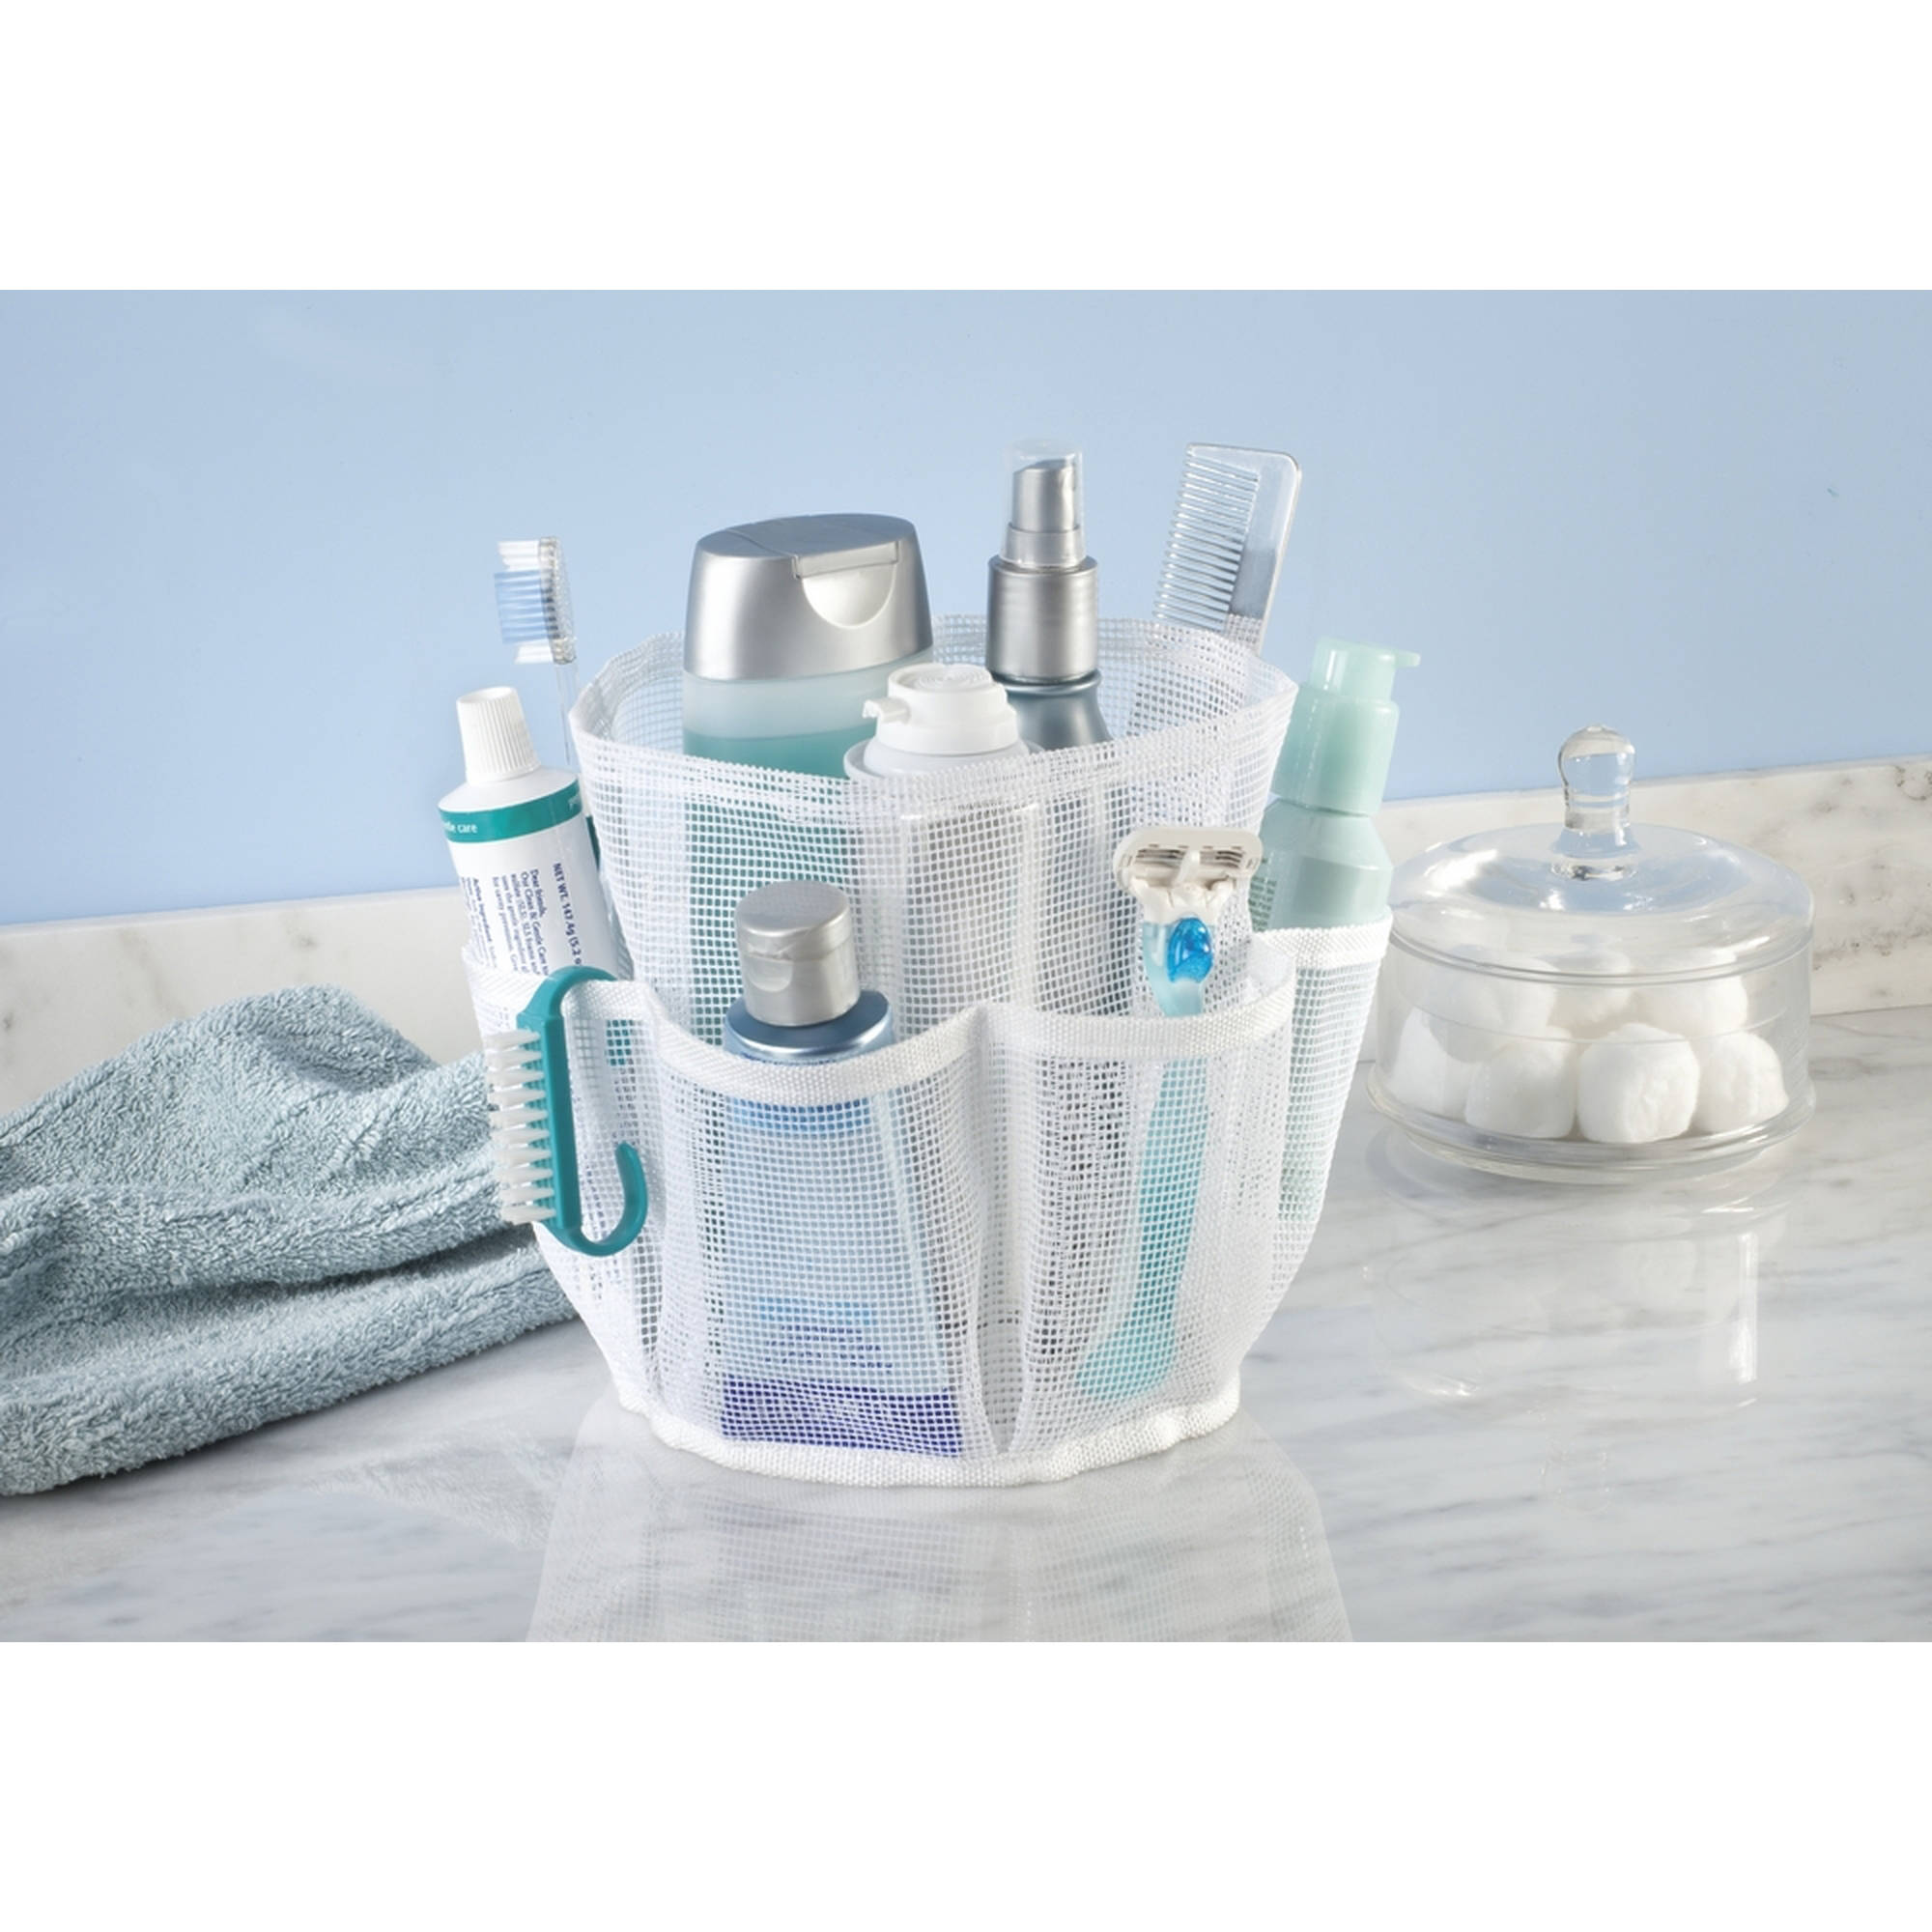 InterDesign Una Bathroom Shower Caddy, Mesh, White - Walmart.com